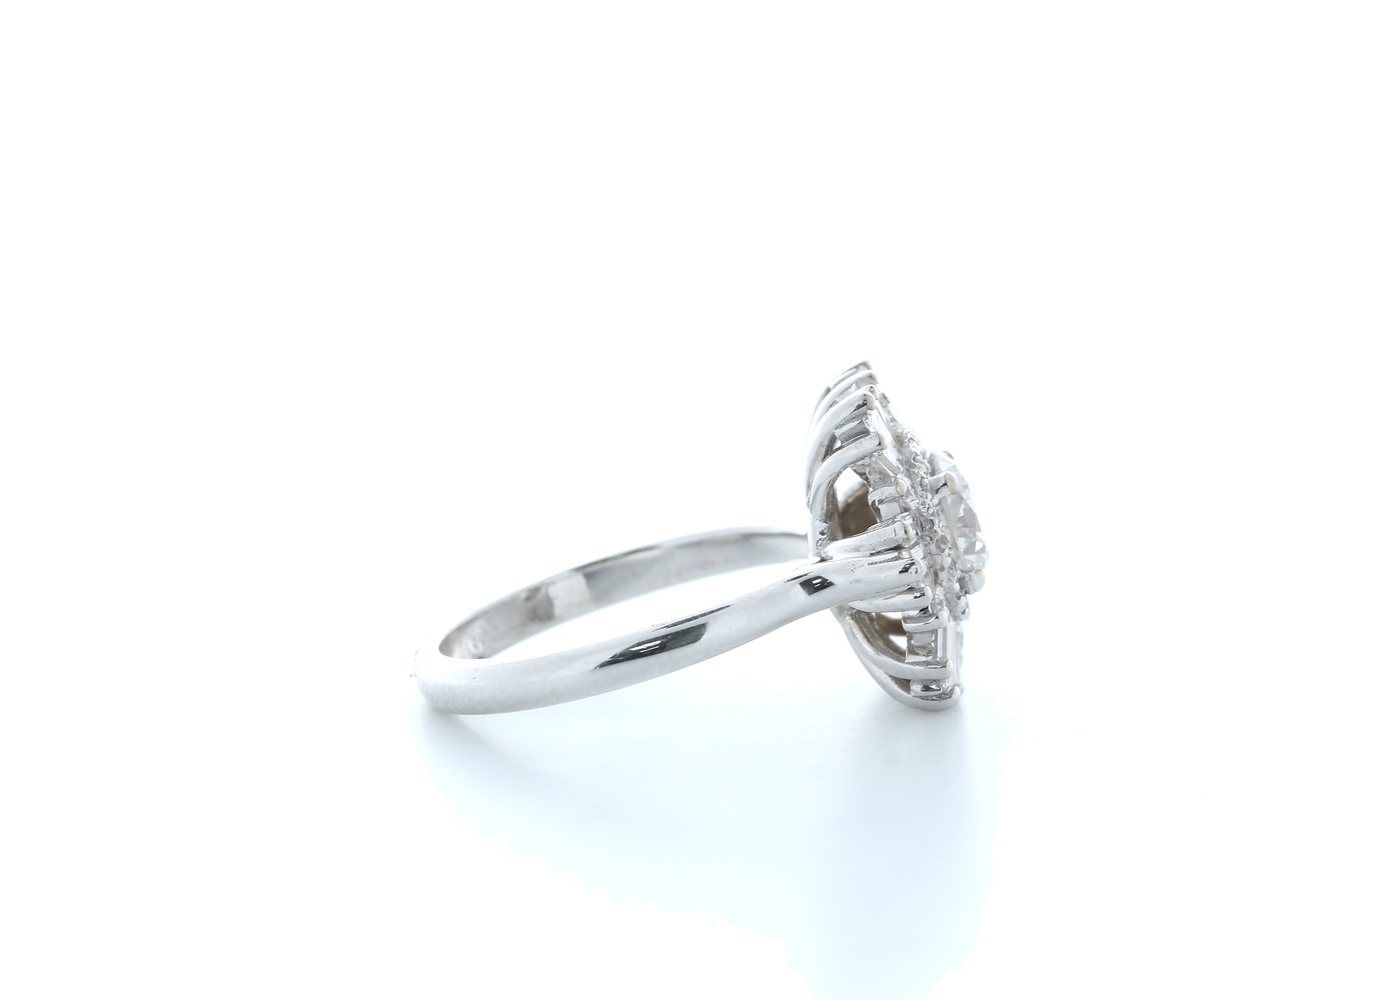 18ct White Gold Round Cluster Claw Set Diamond Ring 1.58 (0.77) Carats - Image 4 of 5